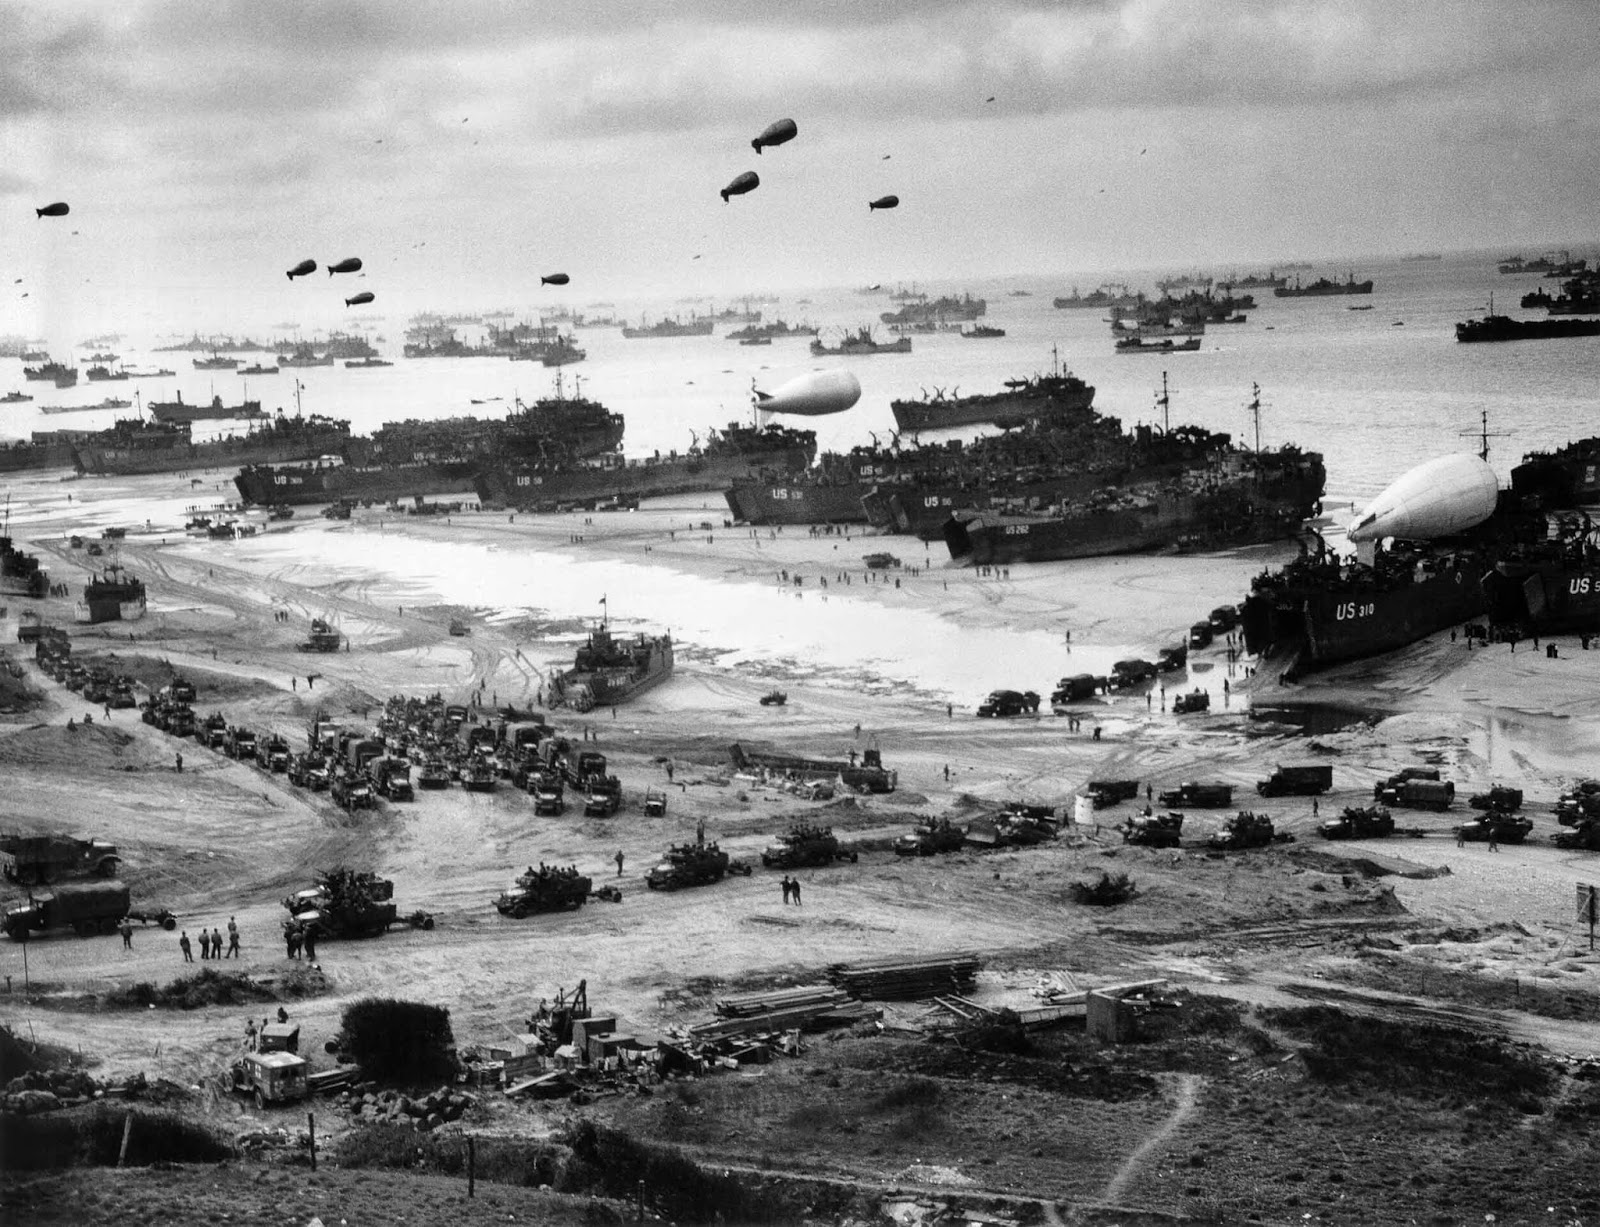 On June 1944, the Allies invade Western Europe in the largest amphibious attack in history.